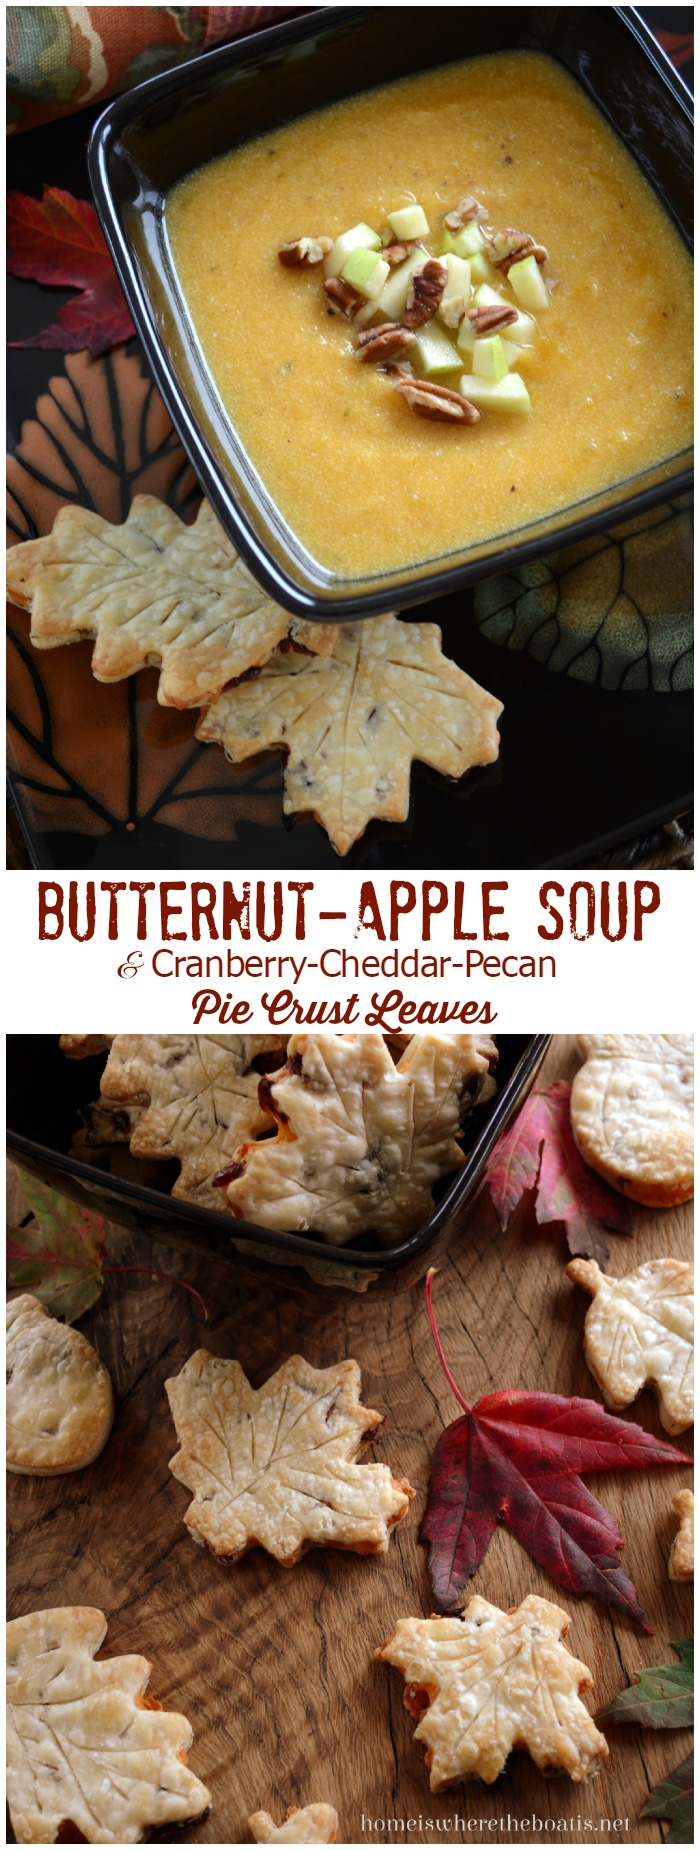 Butternut-Apple Soup & Cranberry-Cheddar-Pecan Pie Crust Leaves